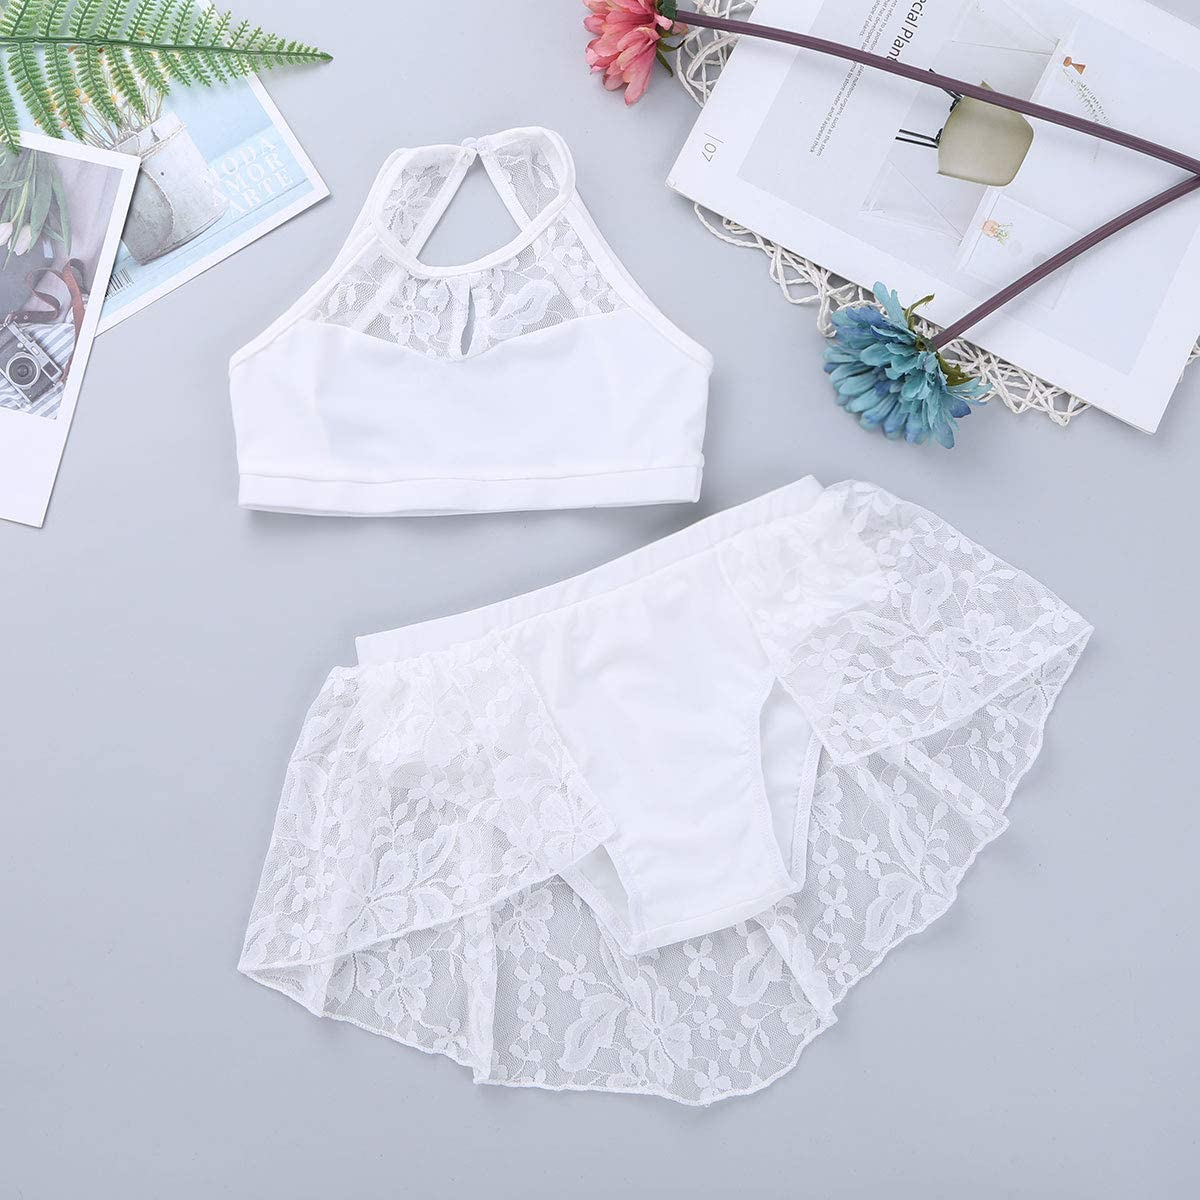 Aislor Kids Big Girls Halter Lace Crop Top with Skirted Bottom Outfits Sports Gymnastics Workout Dance Costumes